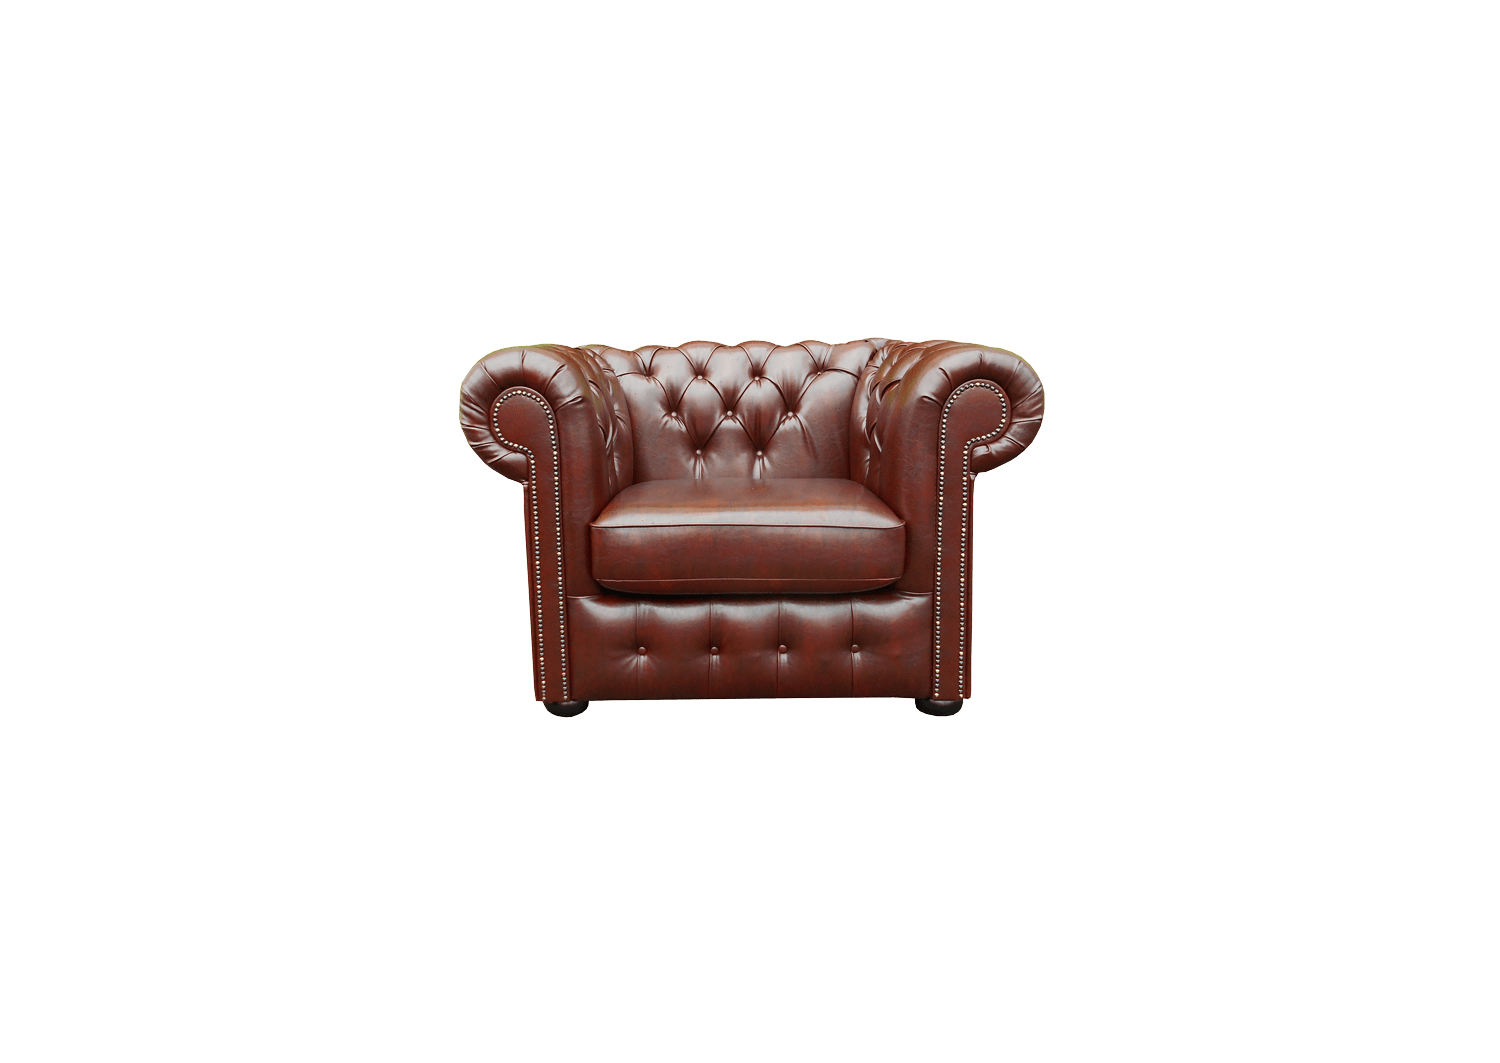 Sessel Chesterfield Chesterfield Sofa Ecksofa Polstermoebel Moebel Sessel